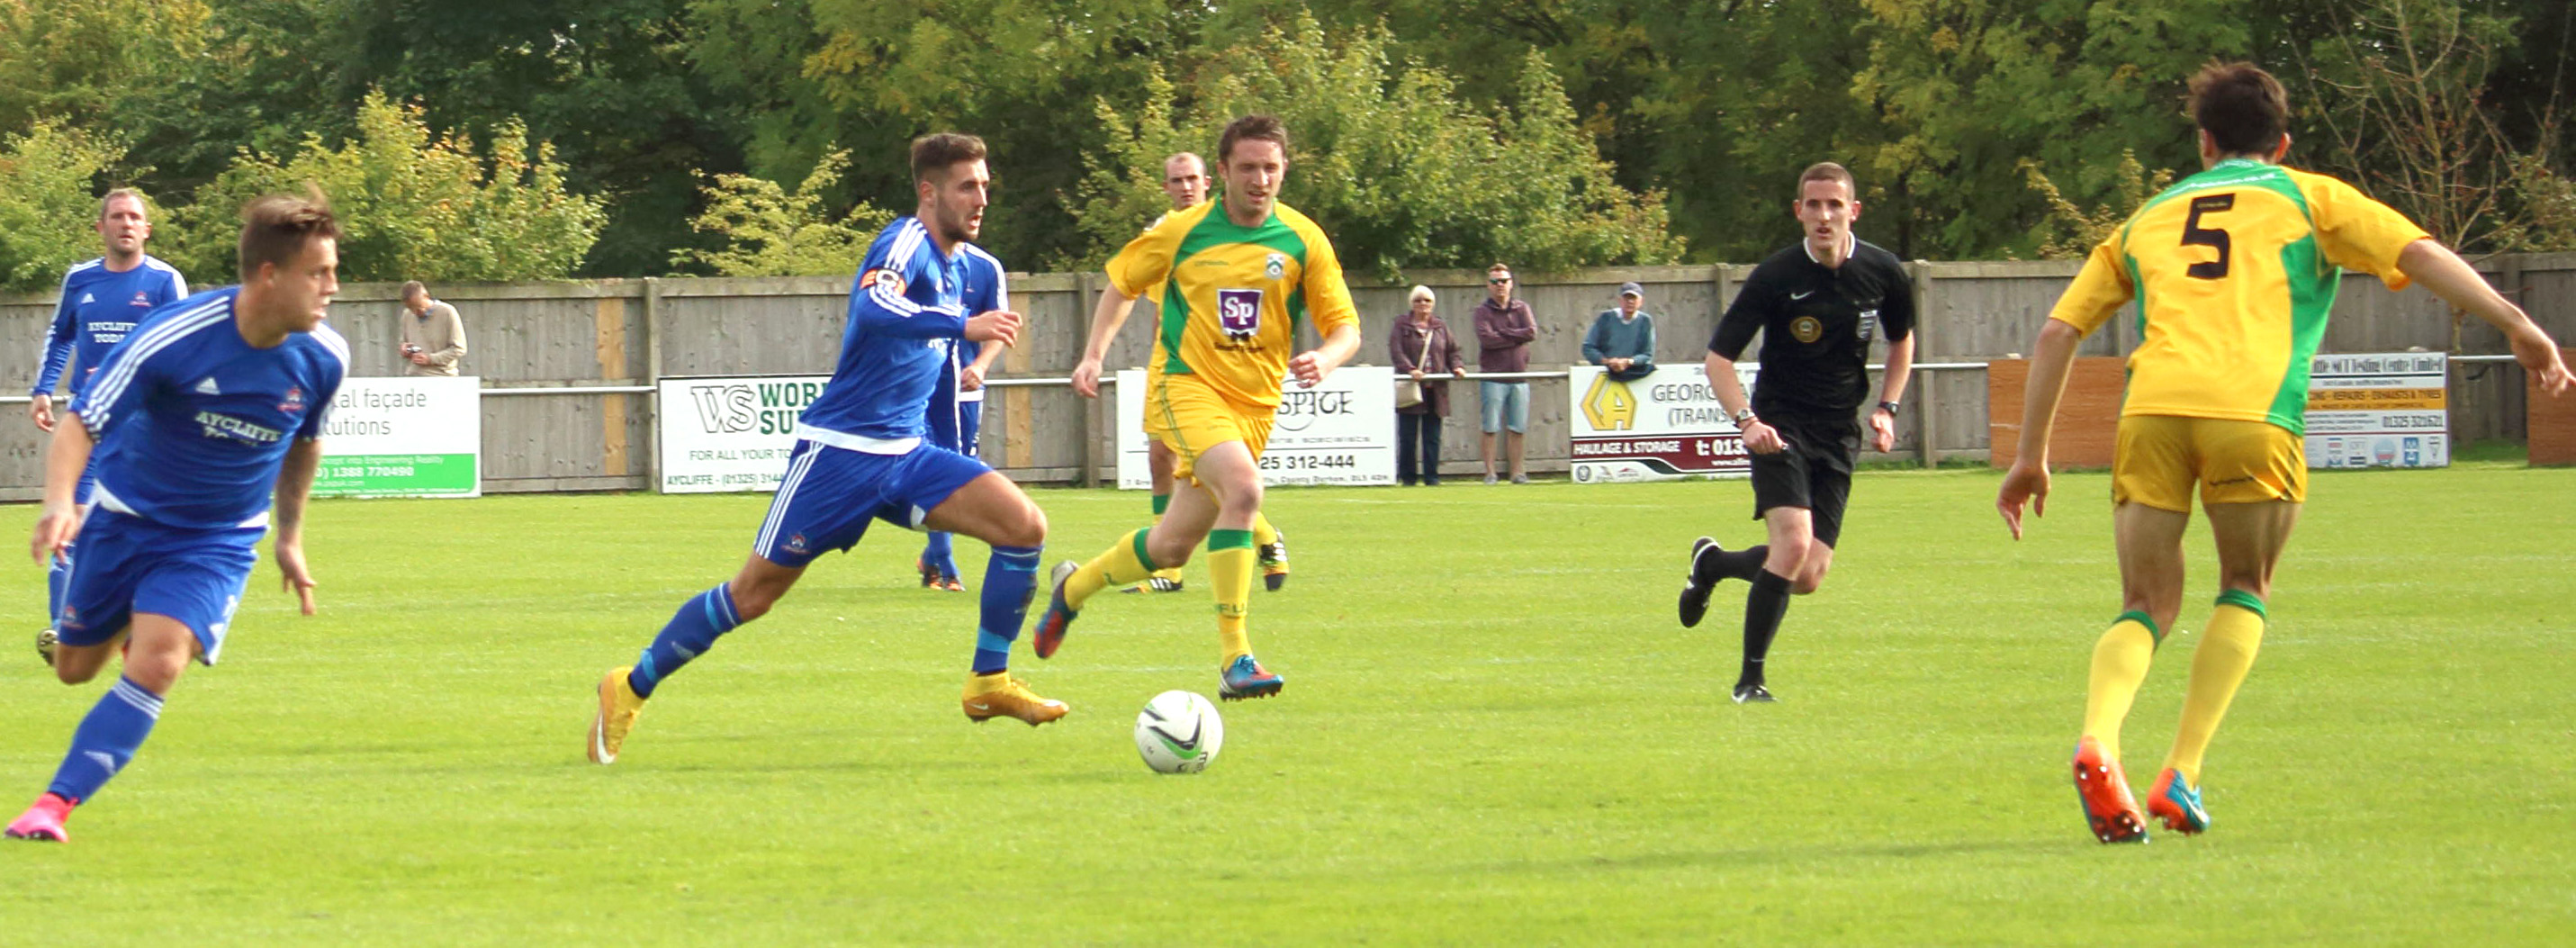 Aycliffe FC Score Four Goals in 10 Minutes